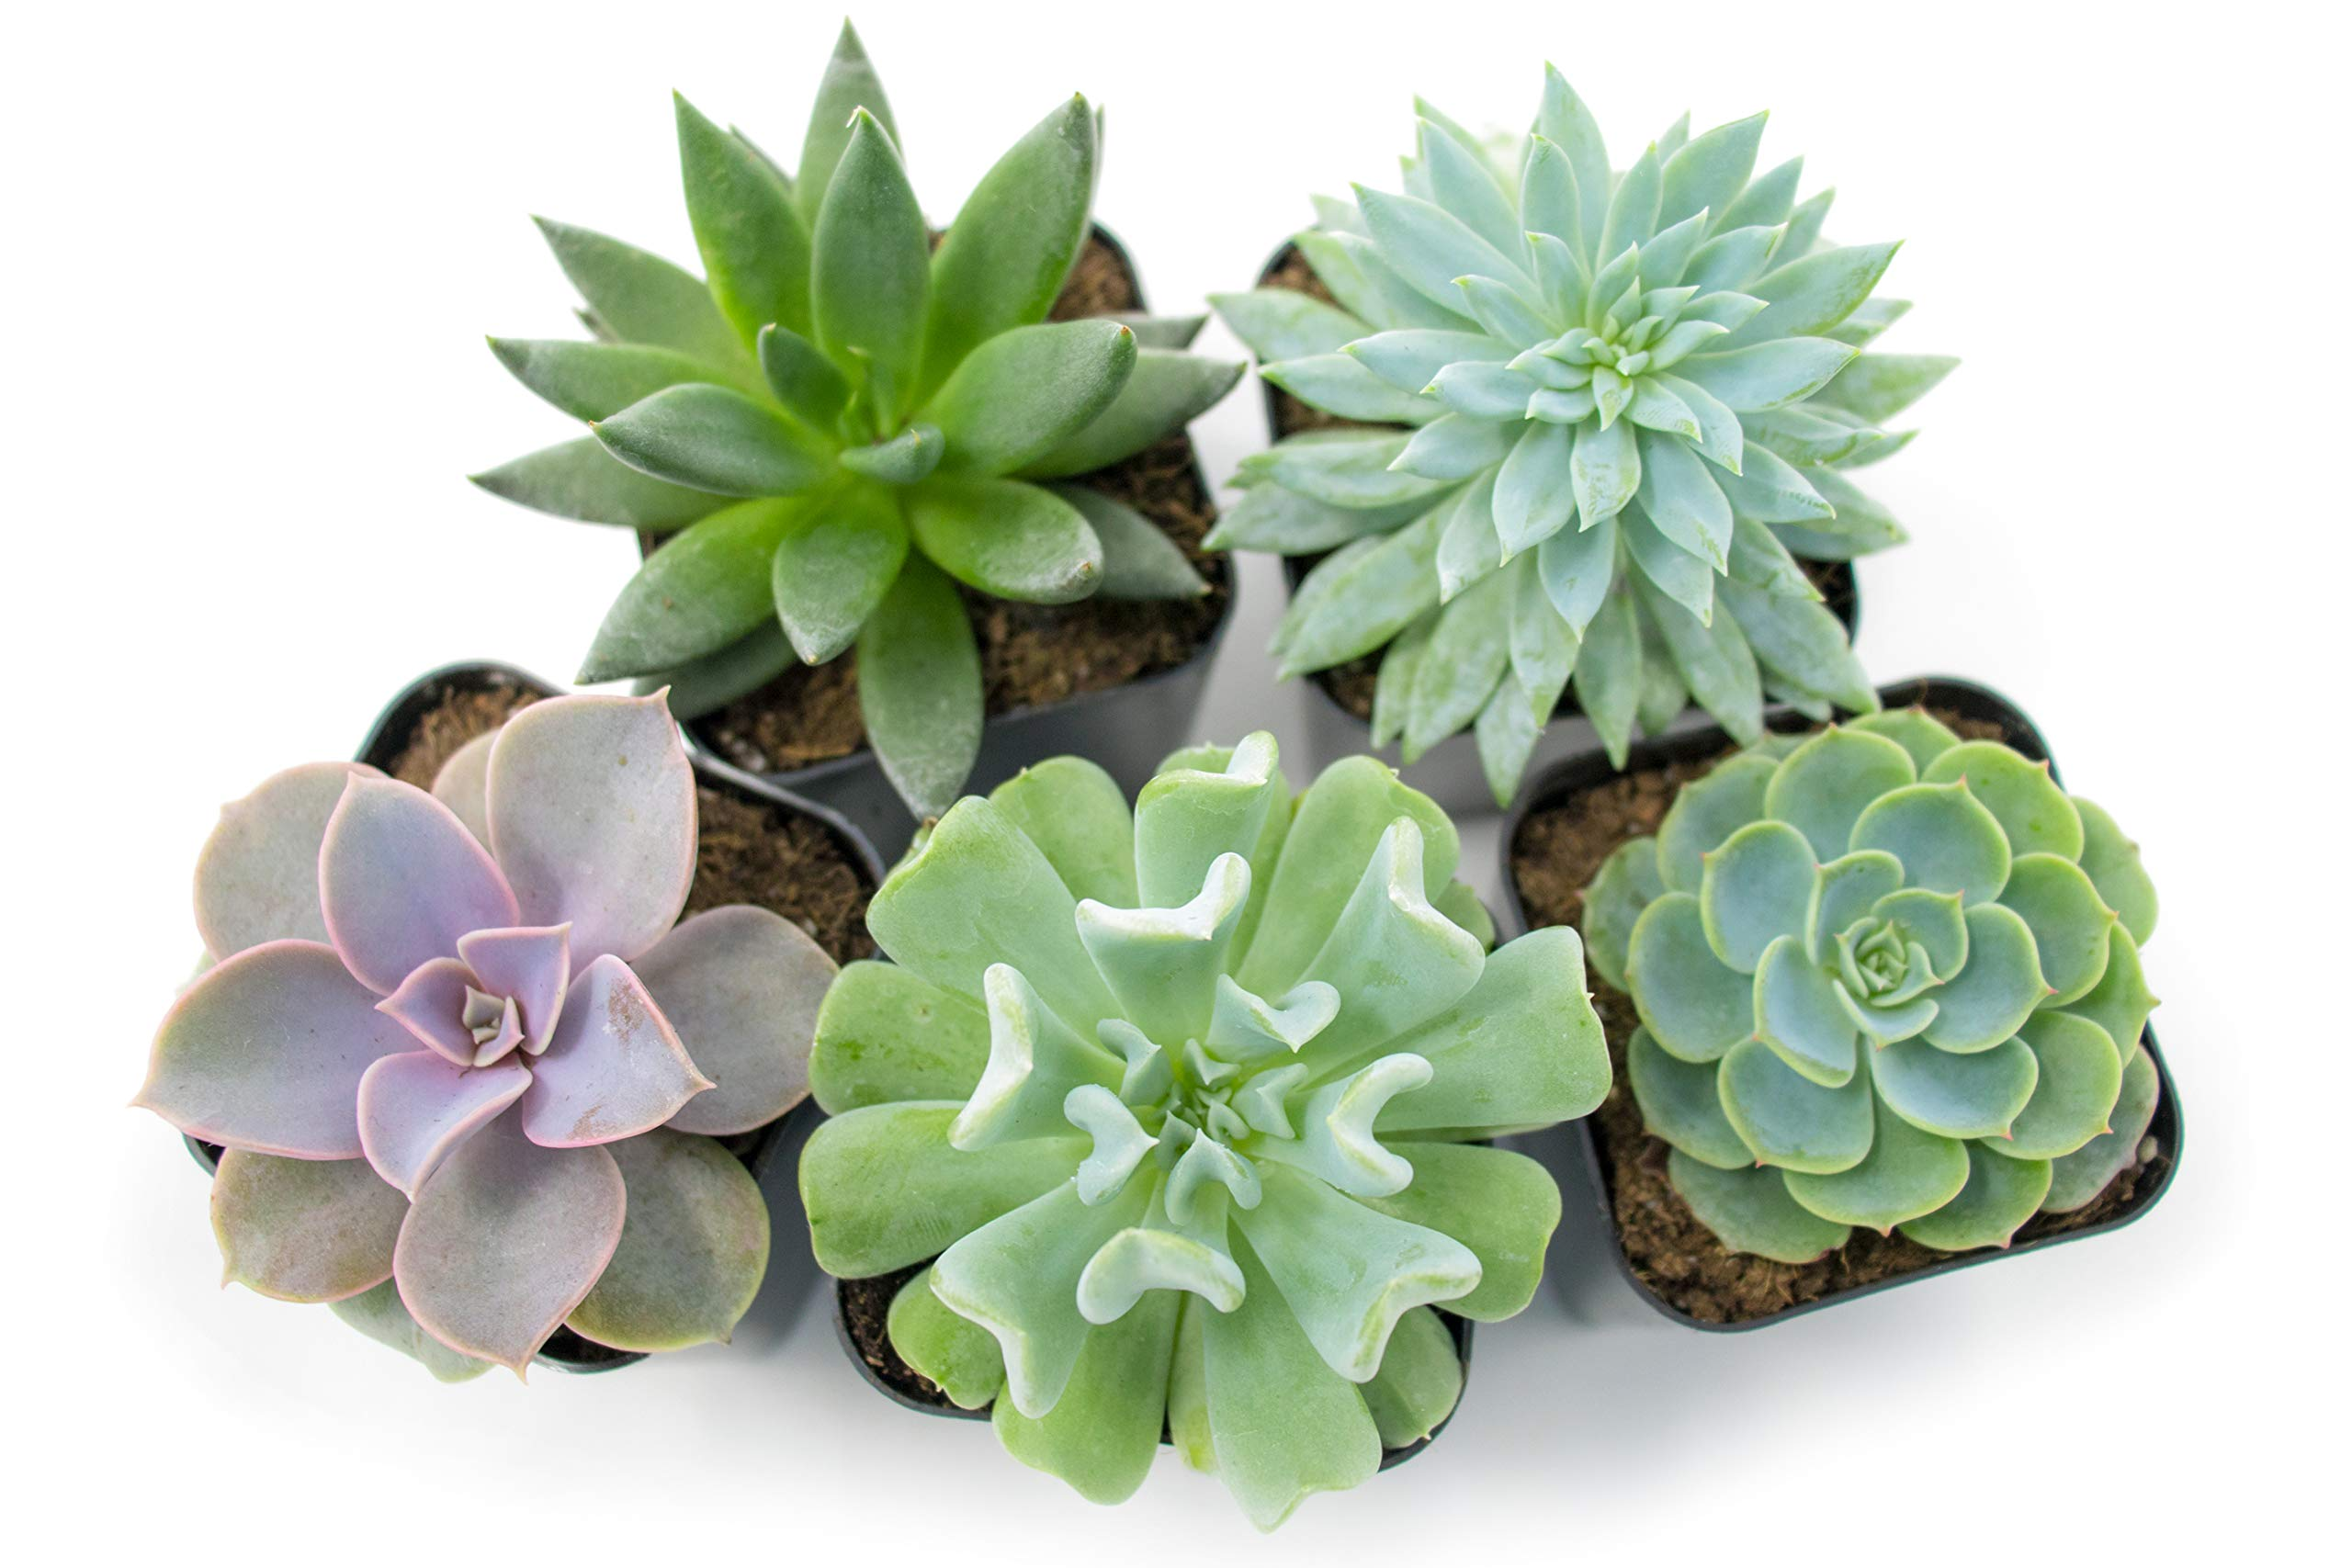 Succulent Plants (5 Pack), Fully Rooted in Planter Pots with Soil -  Real Live Potted Succulents / Unique Indoor Cactus Decor by Plants for Pets 3 HAND SELECTED: Every pack of succulents we send is hand-picked. You will receive a unique collection of species that are FULLY ROOTED IN 2 INCH POTS, which will be similar to the product photos (see photo 2 for scale). Note that we rotate our nursery stock often, so the exact species we send changes every week. THE EASIEST HOUSE PLANTS: More appealing than artificial plastic or fake faux plants, and care is a cinch. If you think you can't keep houseplants alive, you're wrong; our succulents don't require fertilizer and can be planted in a decorative pot of your choice within seconds. DIY HOME DECOR: The possibilities are only limited by your imagination; display them in a plant holder, a wall mount, a geometric glass vase, or even in a live wreath. Because of their amazingly low care requirements, they can even make the perfect desk centerpiece for your office.